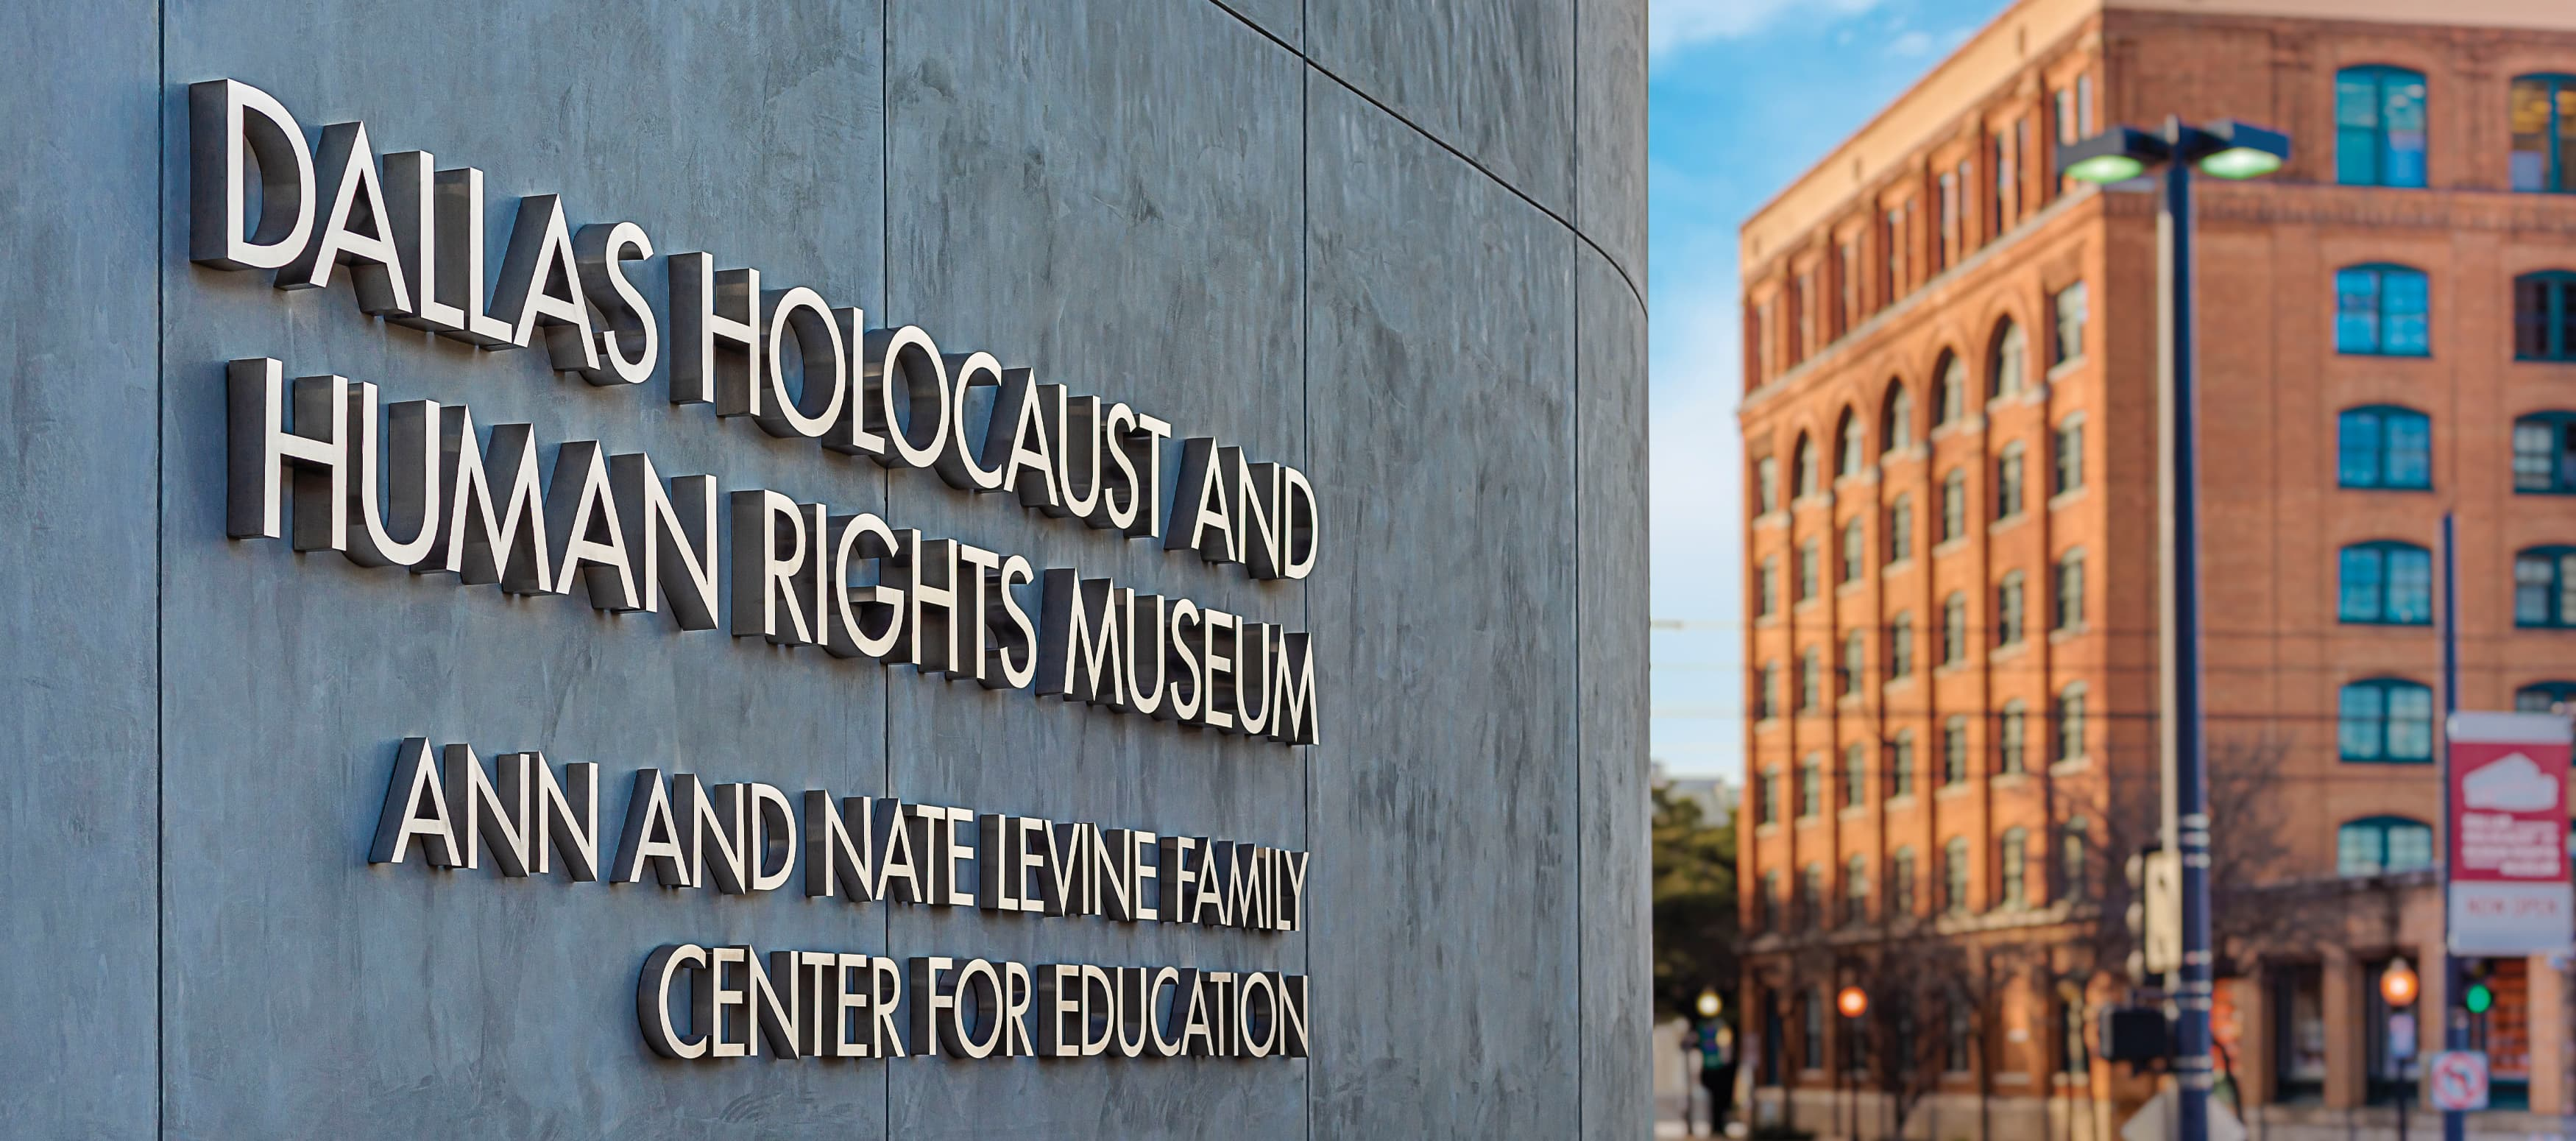 Entrance sign outdoors to the Dallas Holocaust Museum with city buildings in background